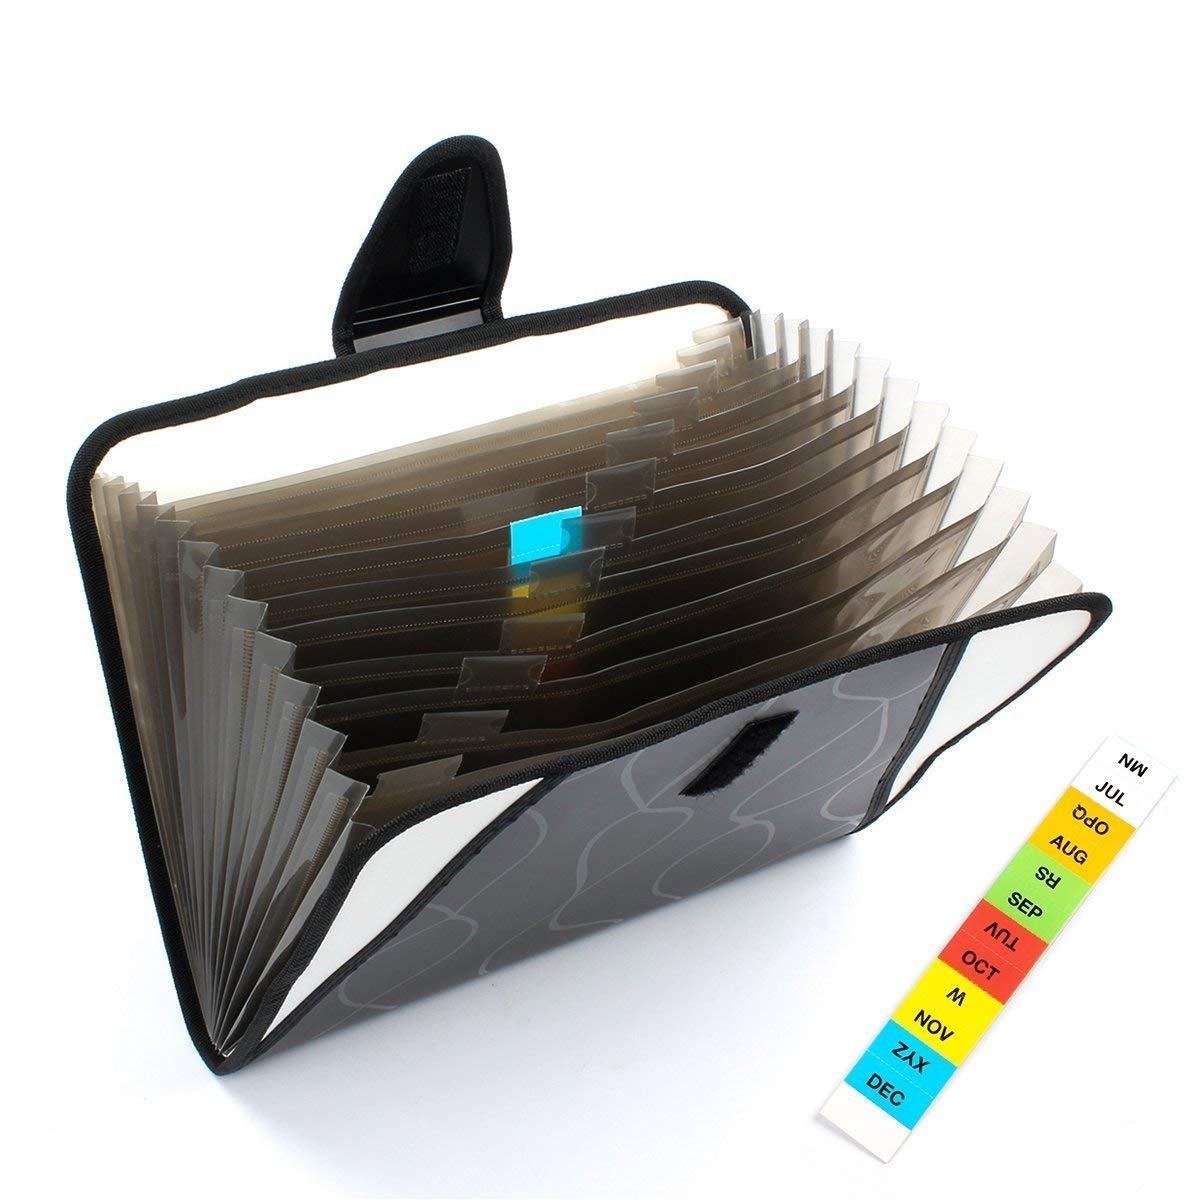 Yebmoo 13/ tasche espandibile portatile Accordion file cartella documenti file organizzatore velcro /& lettera di formato A4 MS-Folder Black